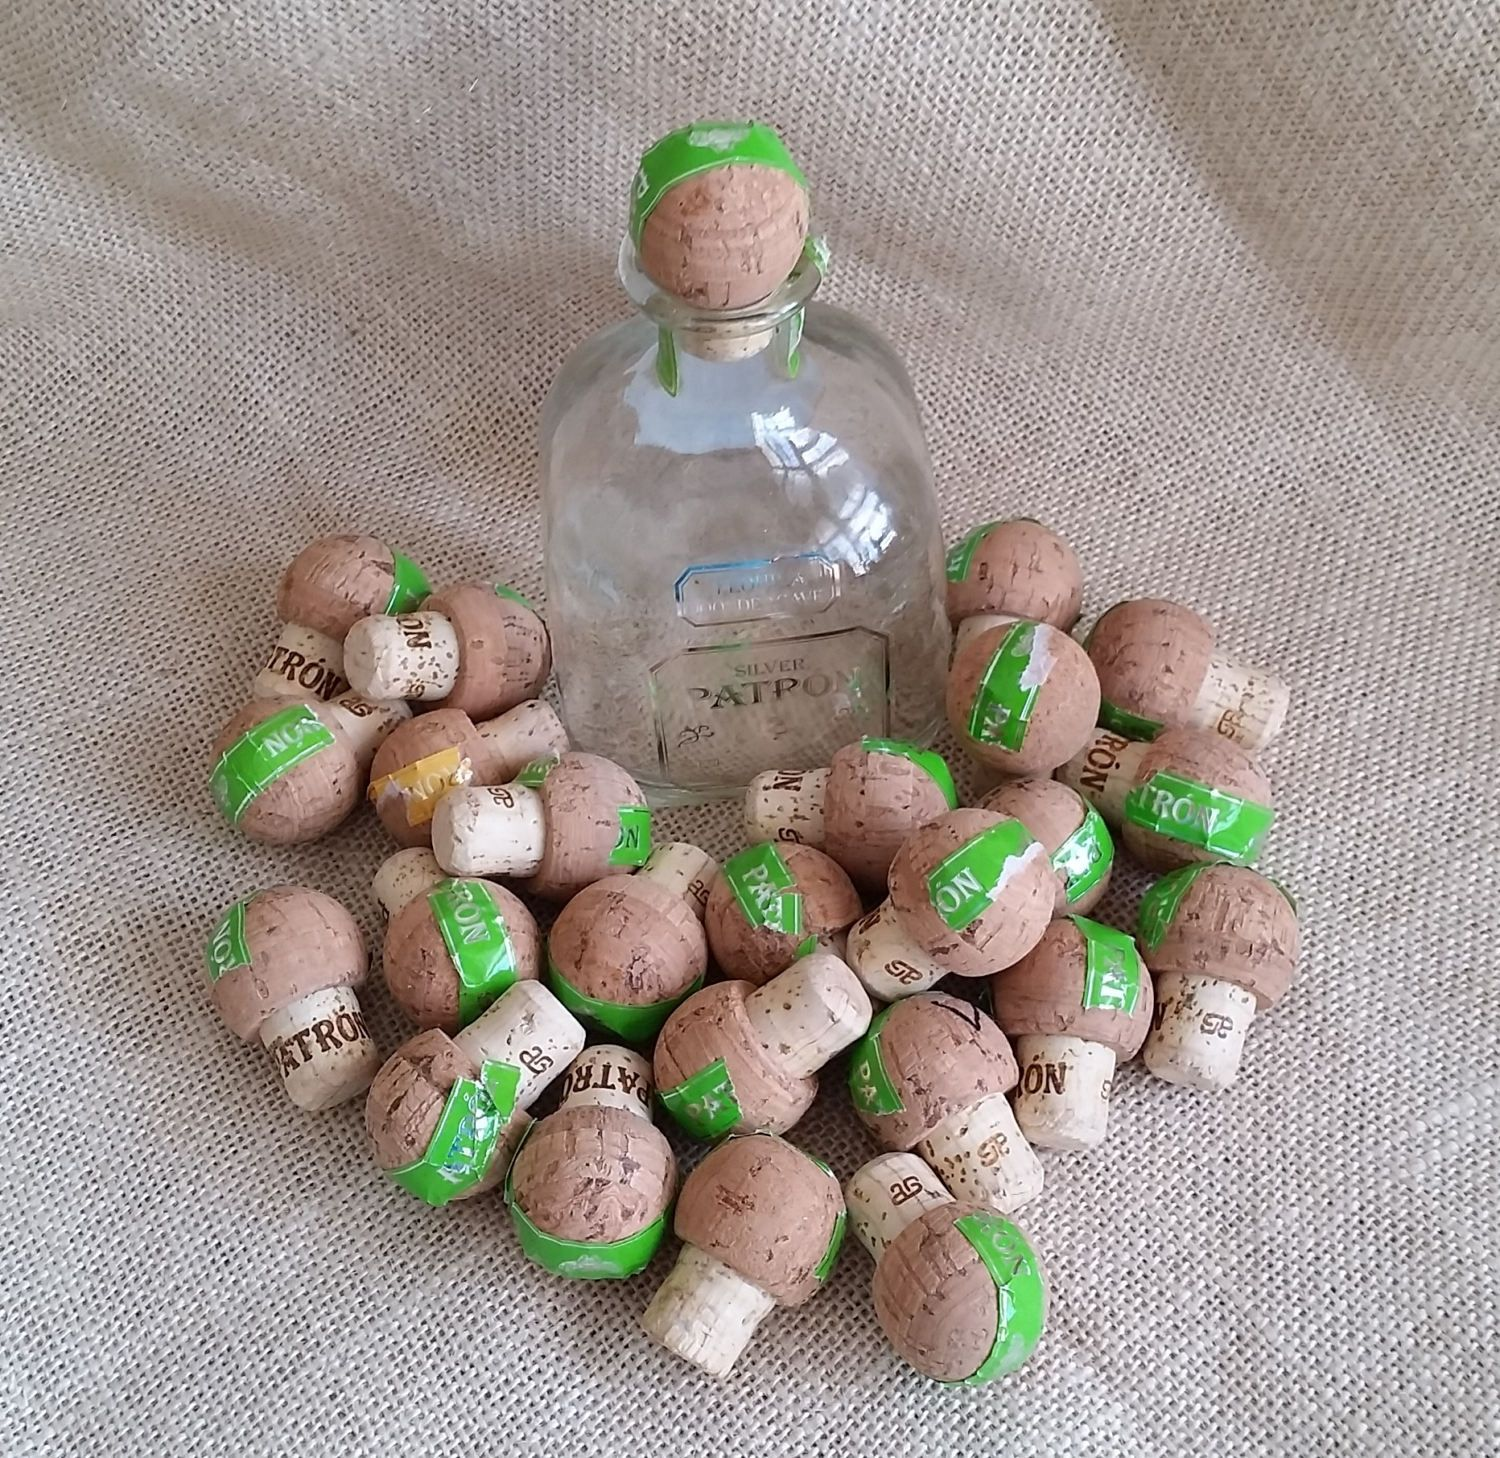 Cork Crafts For Weddings: 25 Used Patron Tequila Corks